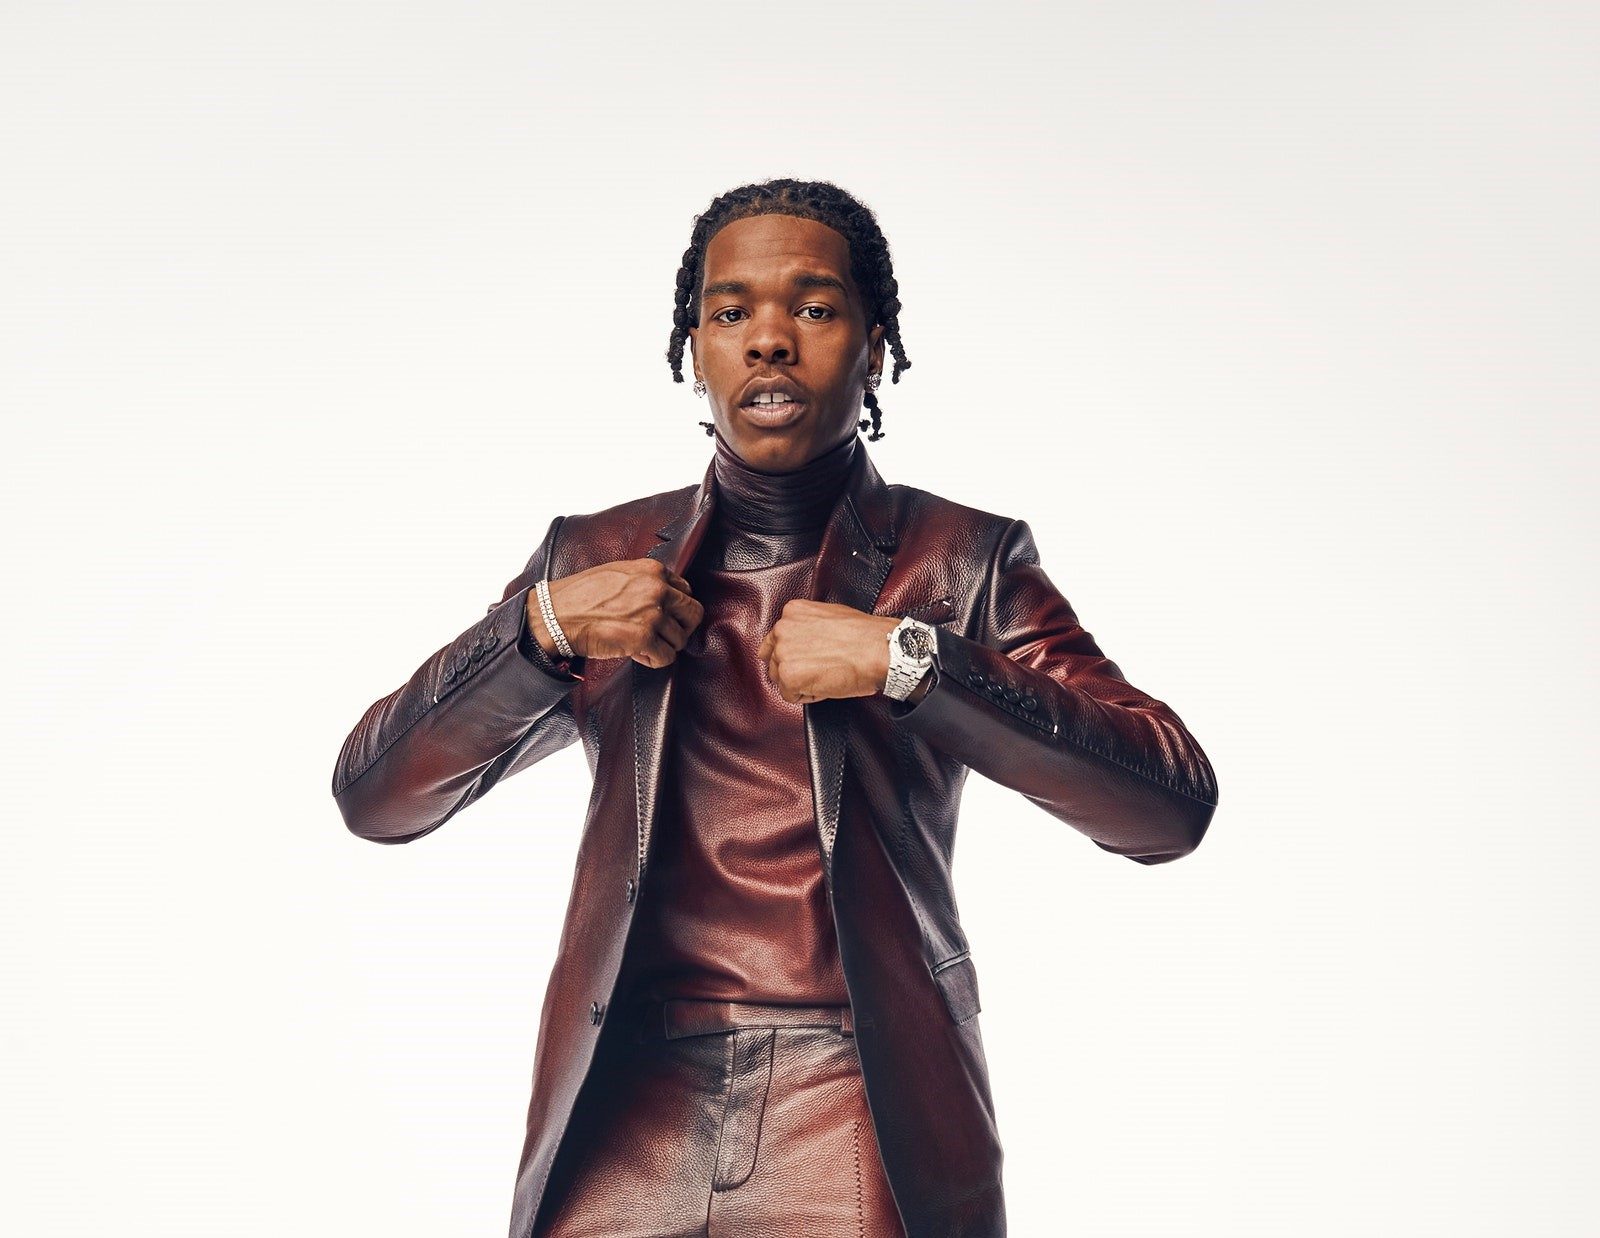 SPOTTED: Lil Baby Rocks Leather Tailoring for GQ